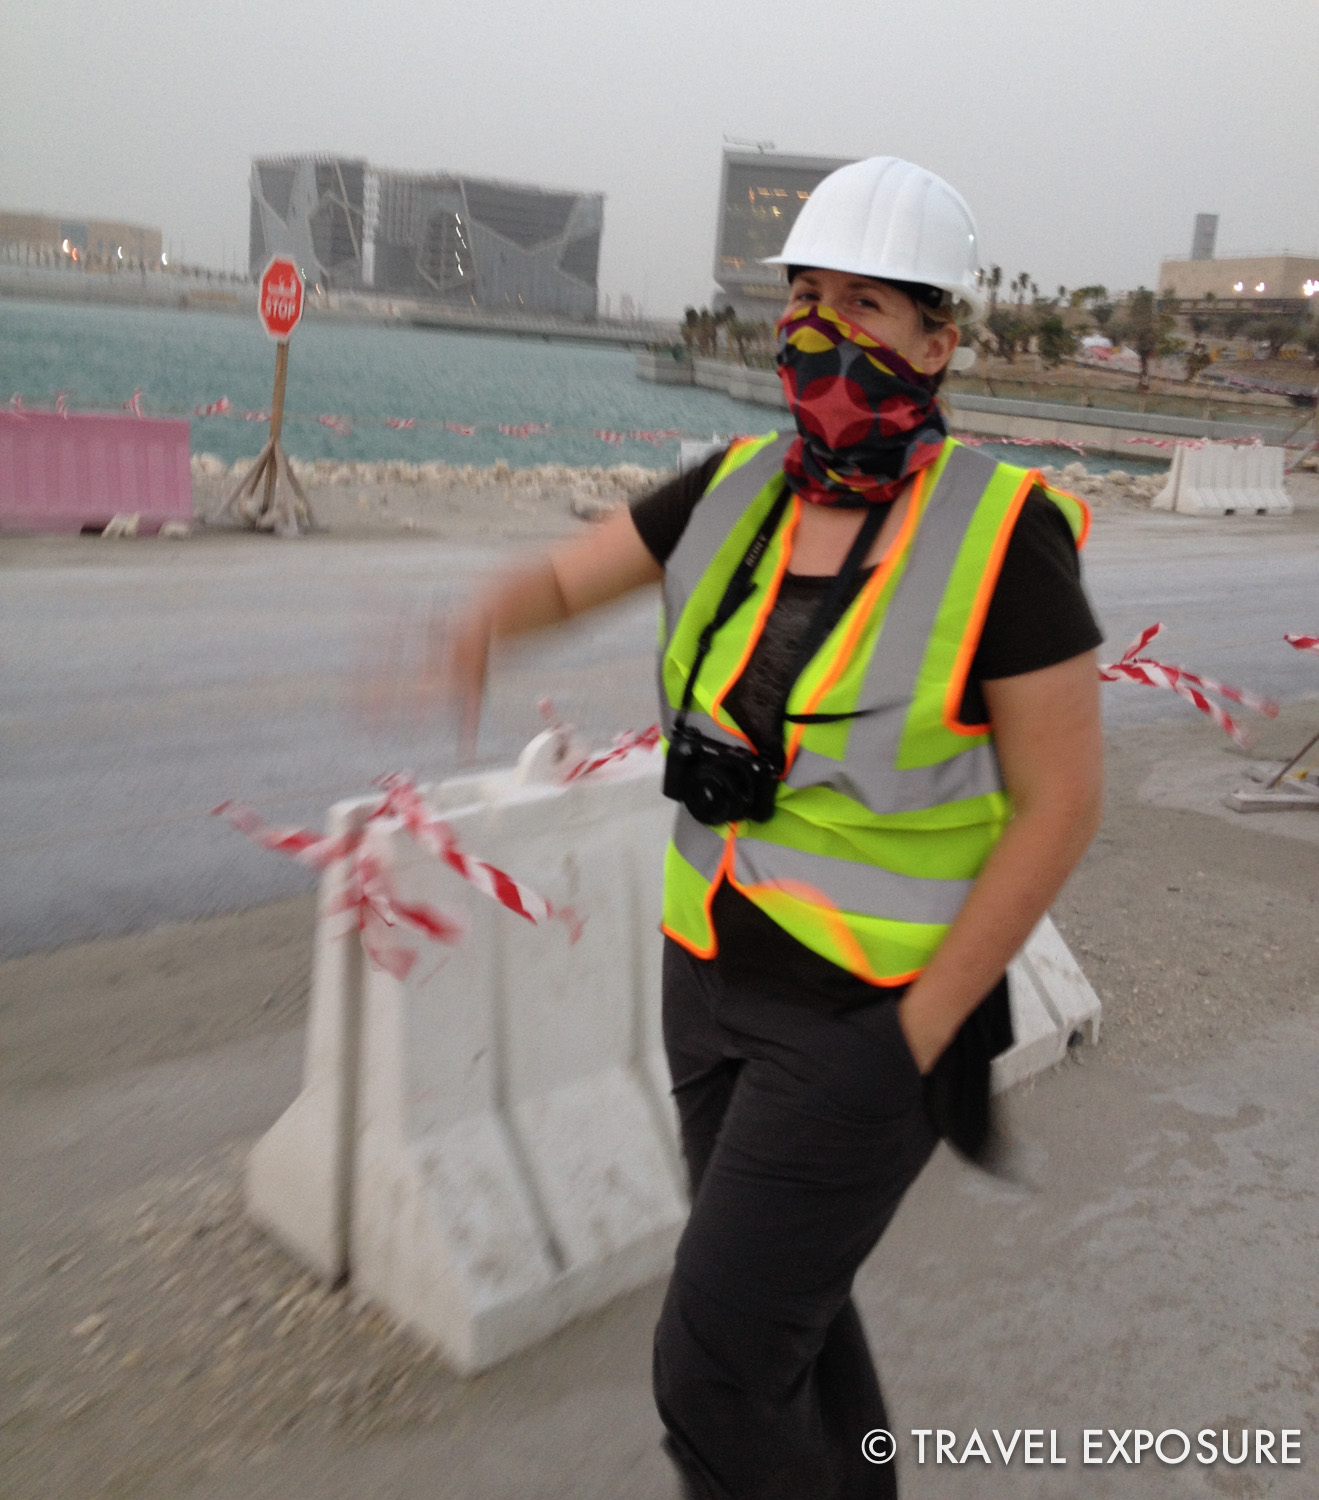 Beth ready for the constructions site and the sandstorm